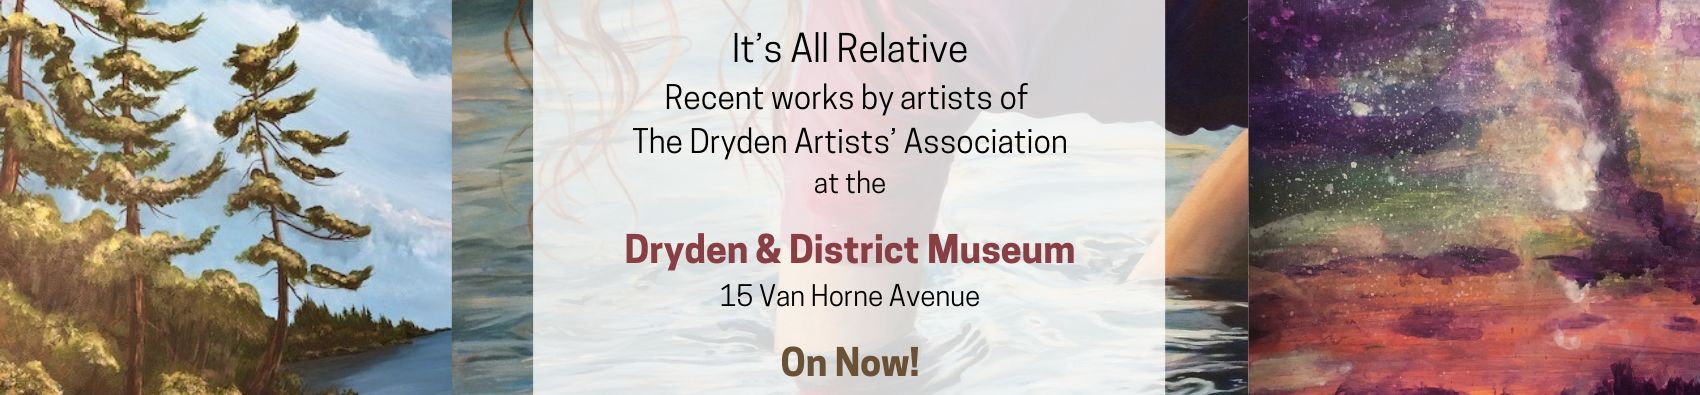 "Poster for The Dryden Artists' Association Exhibit ""It's All Relative"""